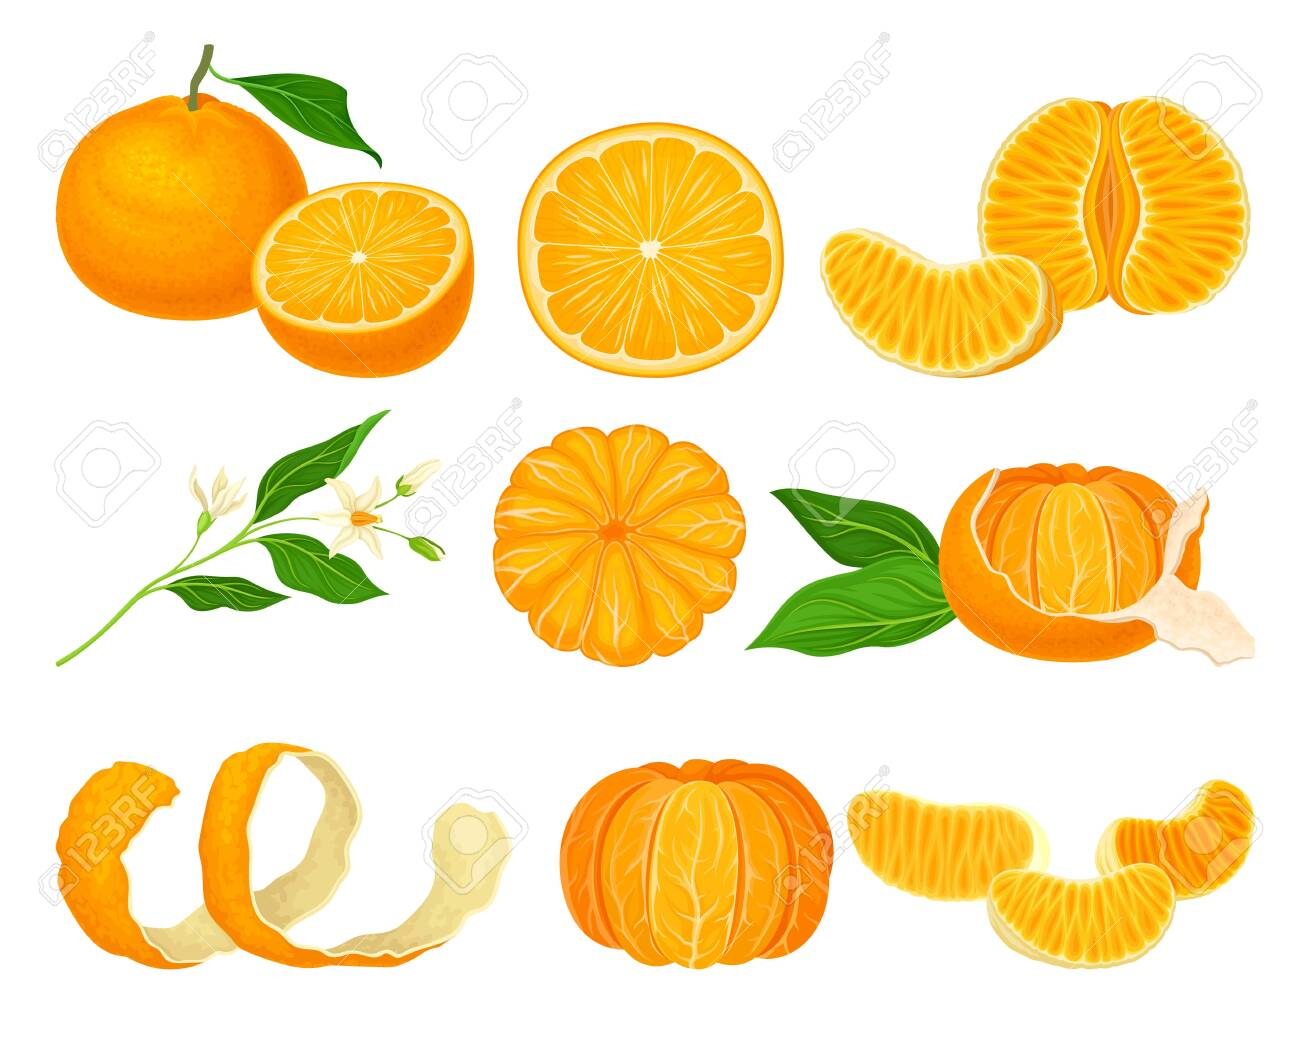 Orange Mandarin Fruit Unpeeled and Skinless with Segments Vector Set. Tropical Sweet Ripe Citrus Fruit Concept - 144323378